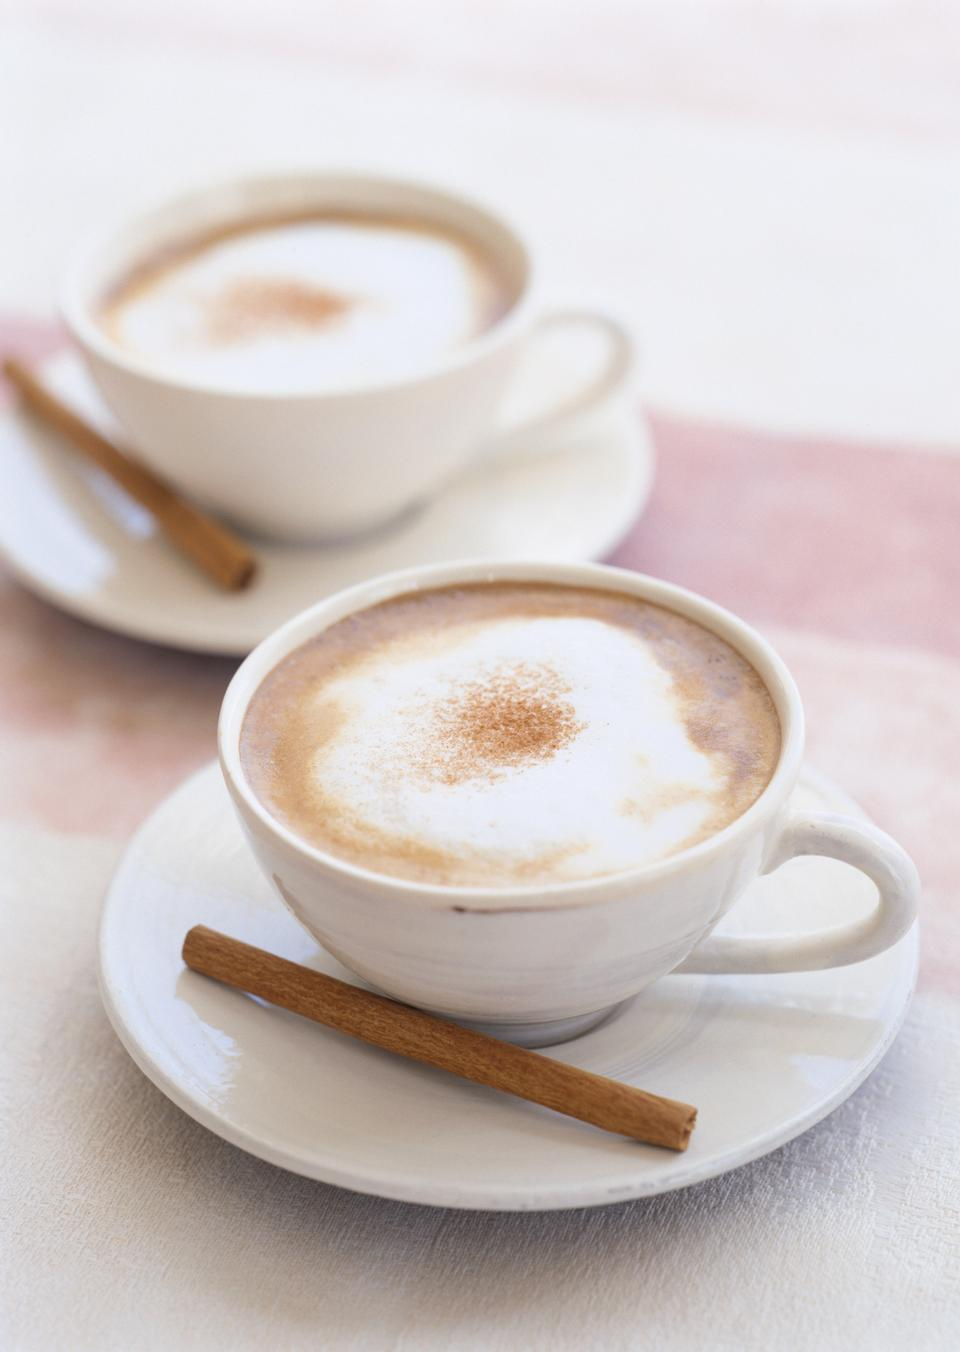 Two cups of cappuccino with cinnamon stick